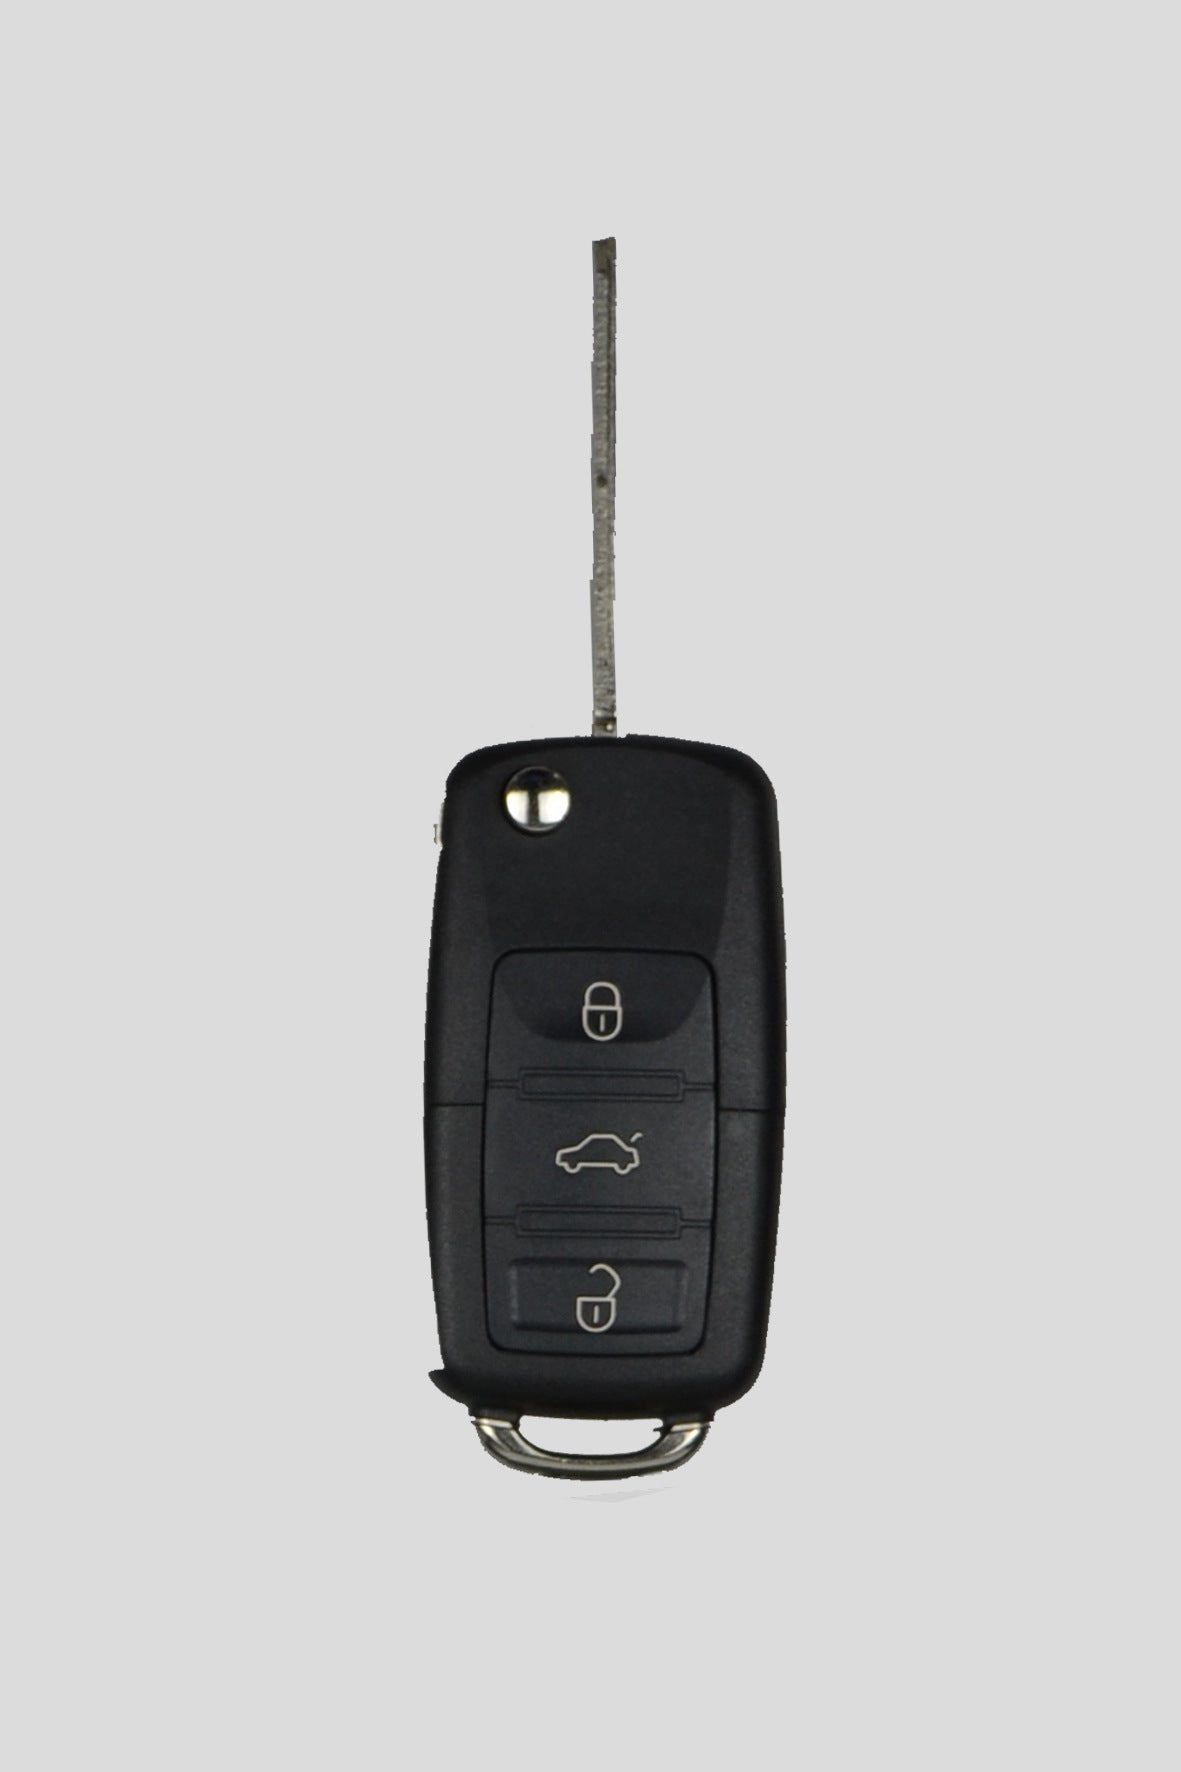 Manufacturers supply car key remote control, ordinary straight, folding bullets, etc. remote control